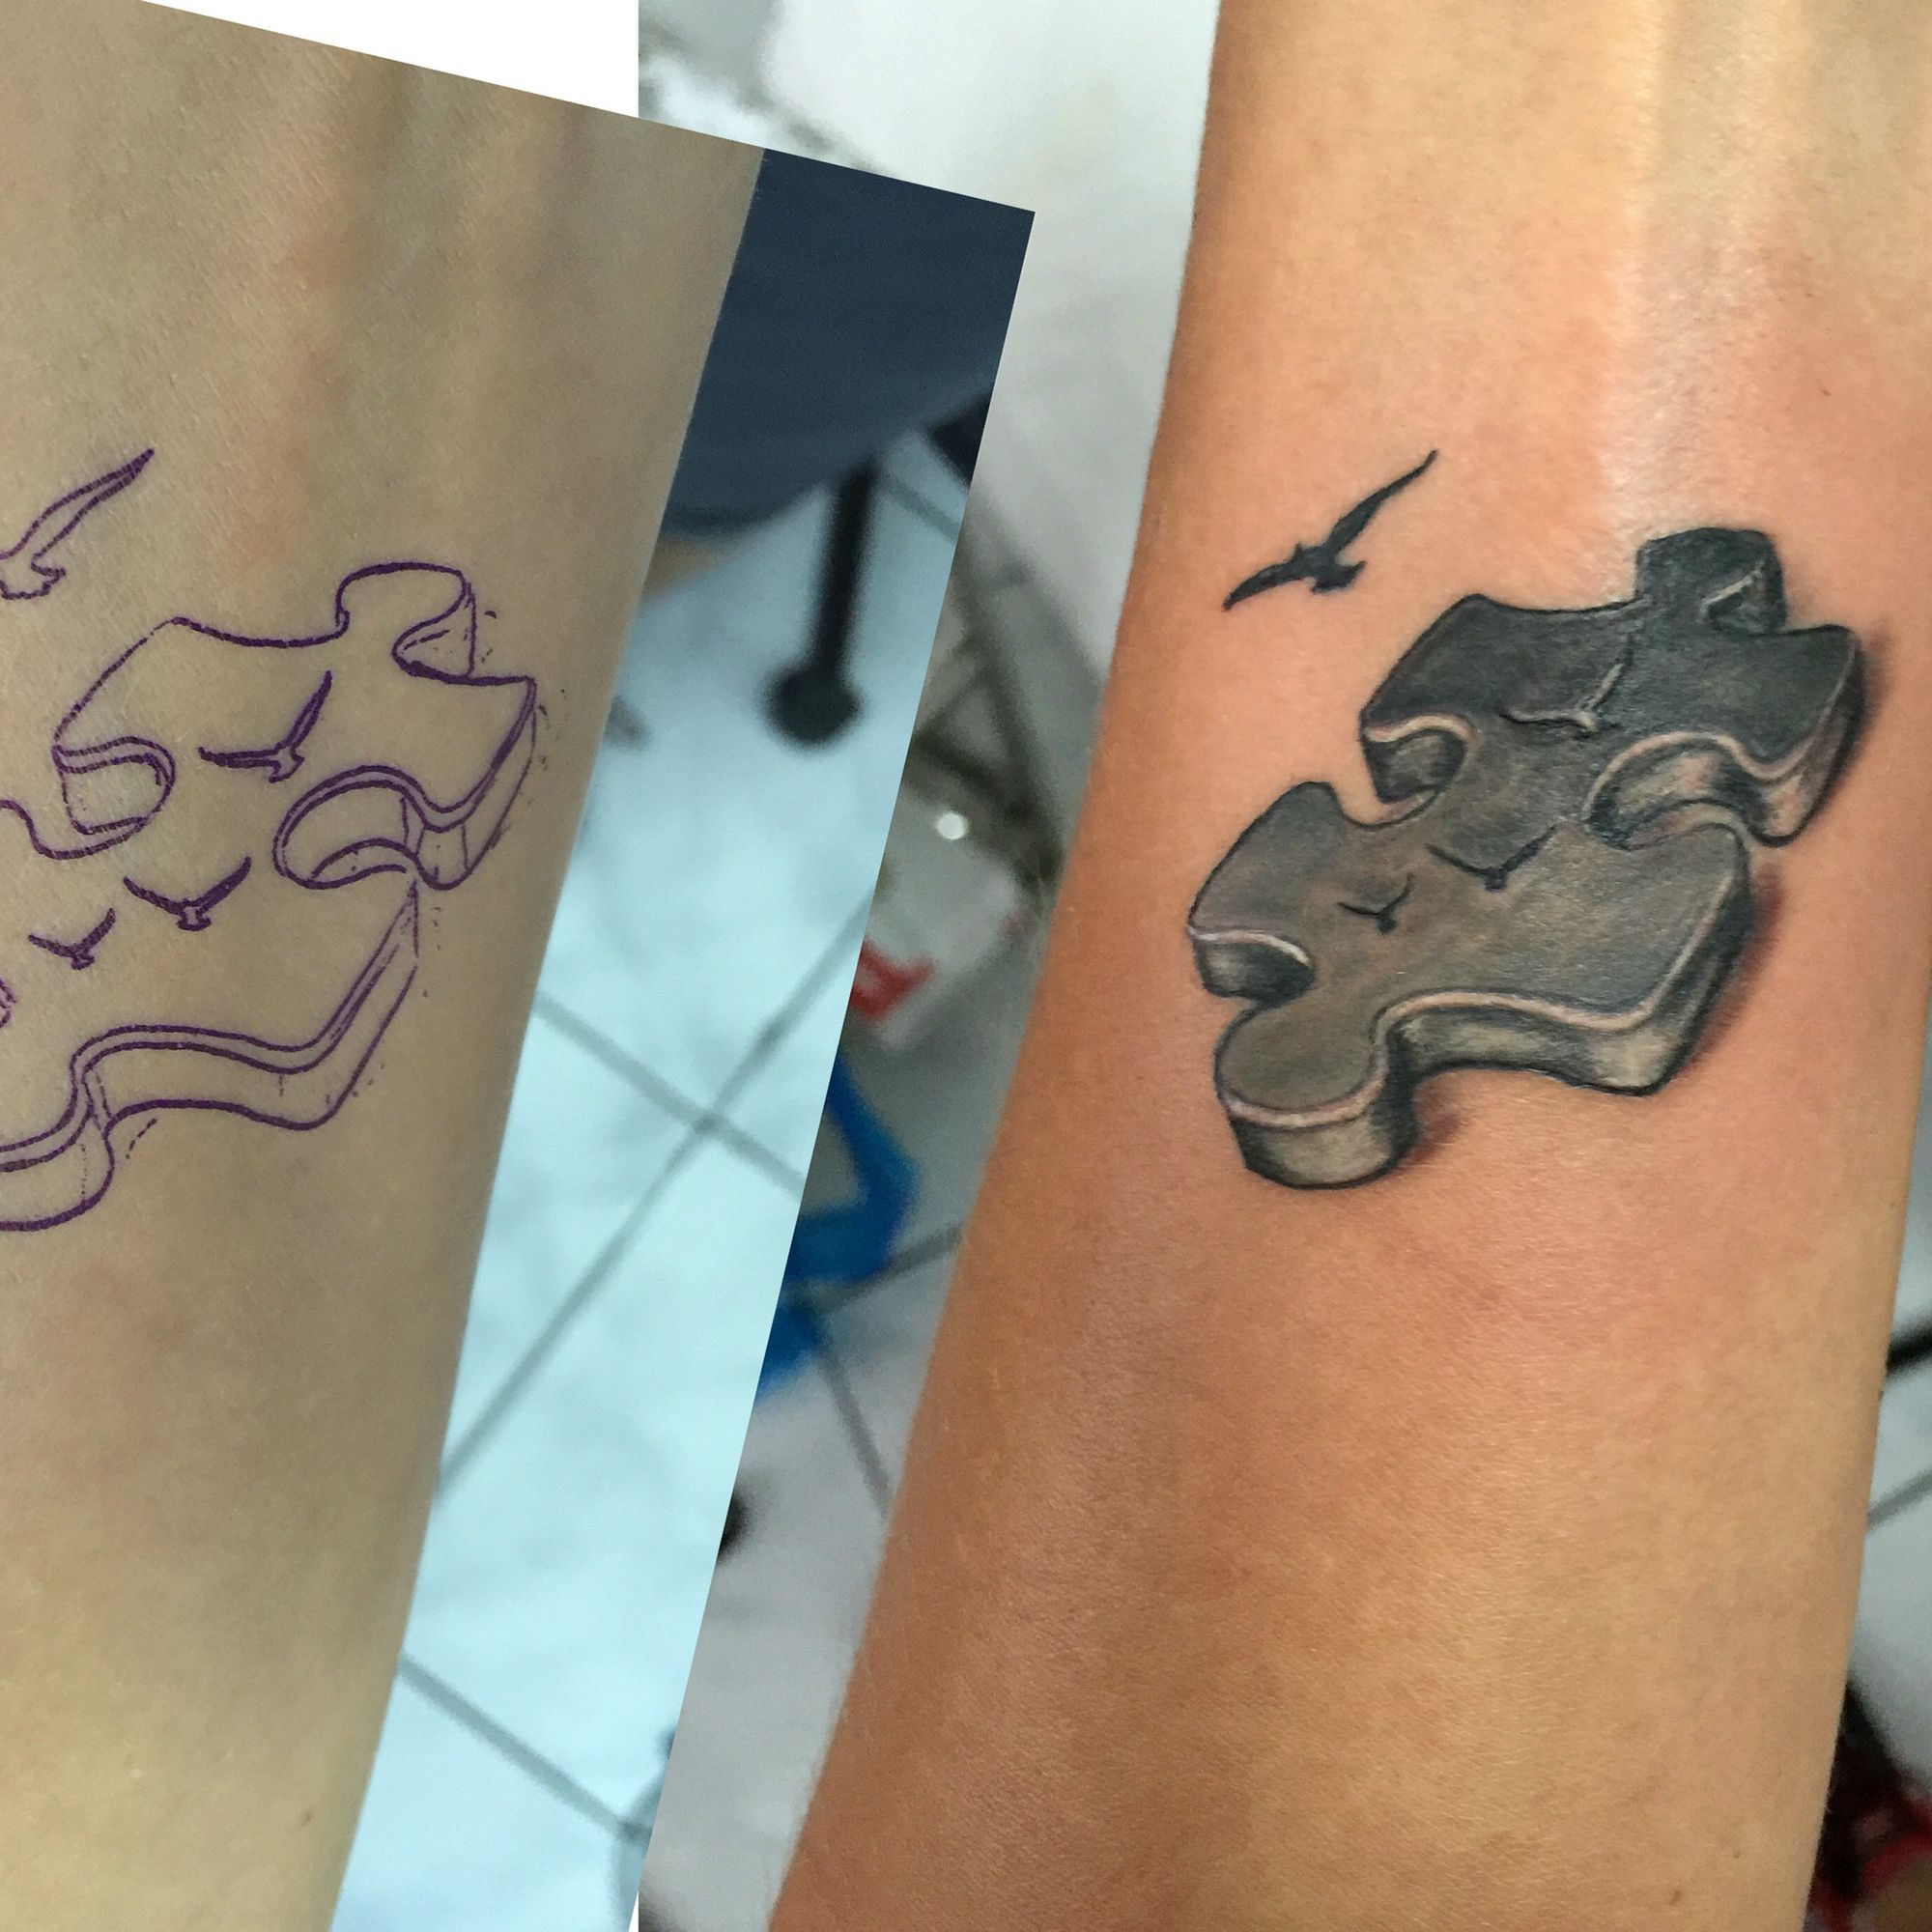 3D Puzzle Piece Tattoo Tattoo Ideas By Tears Of Fenix Ideas And Designs